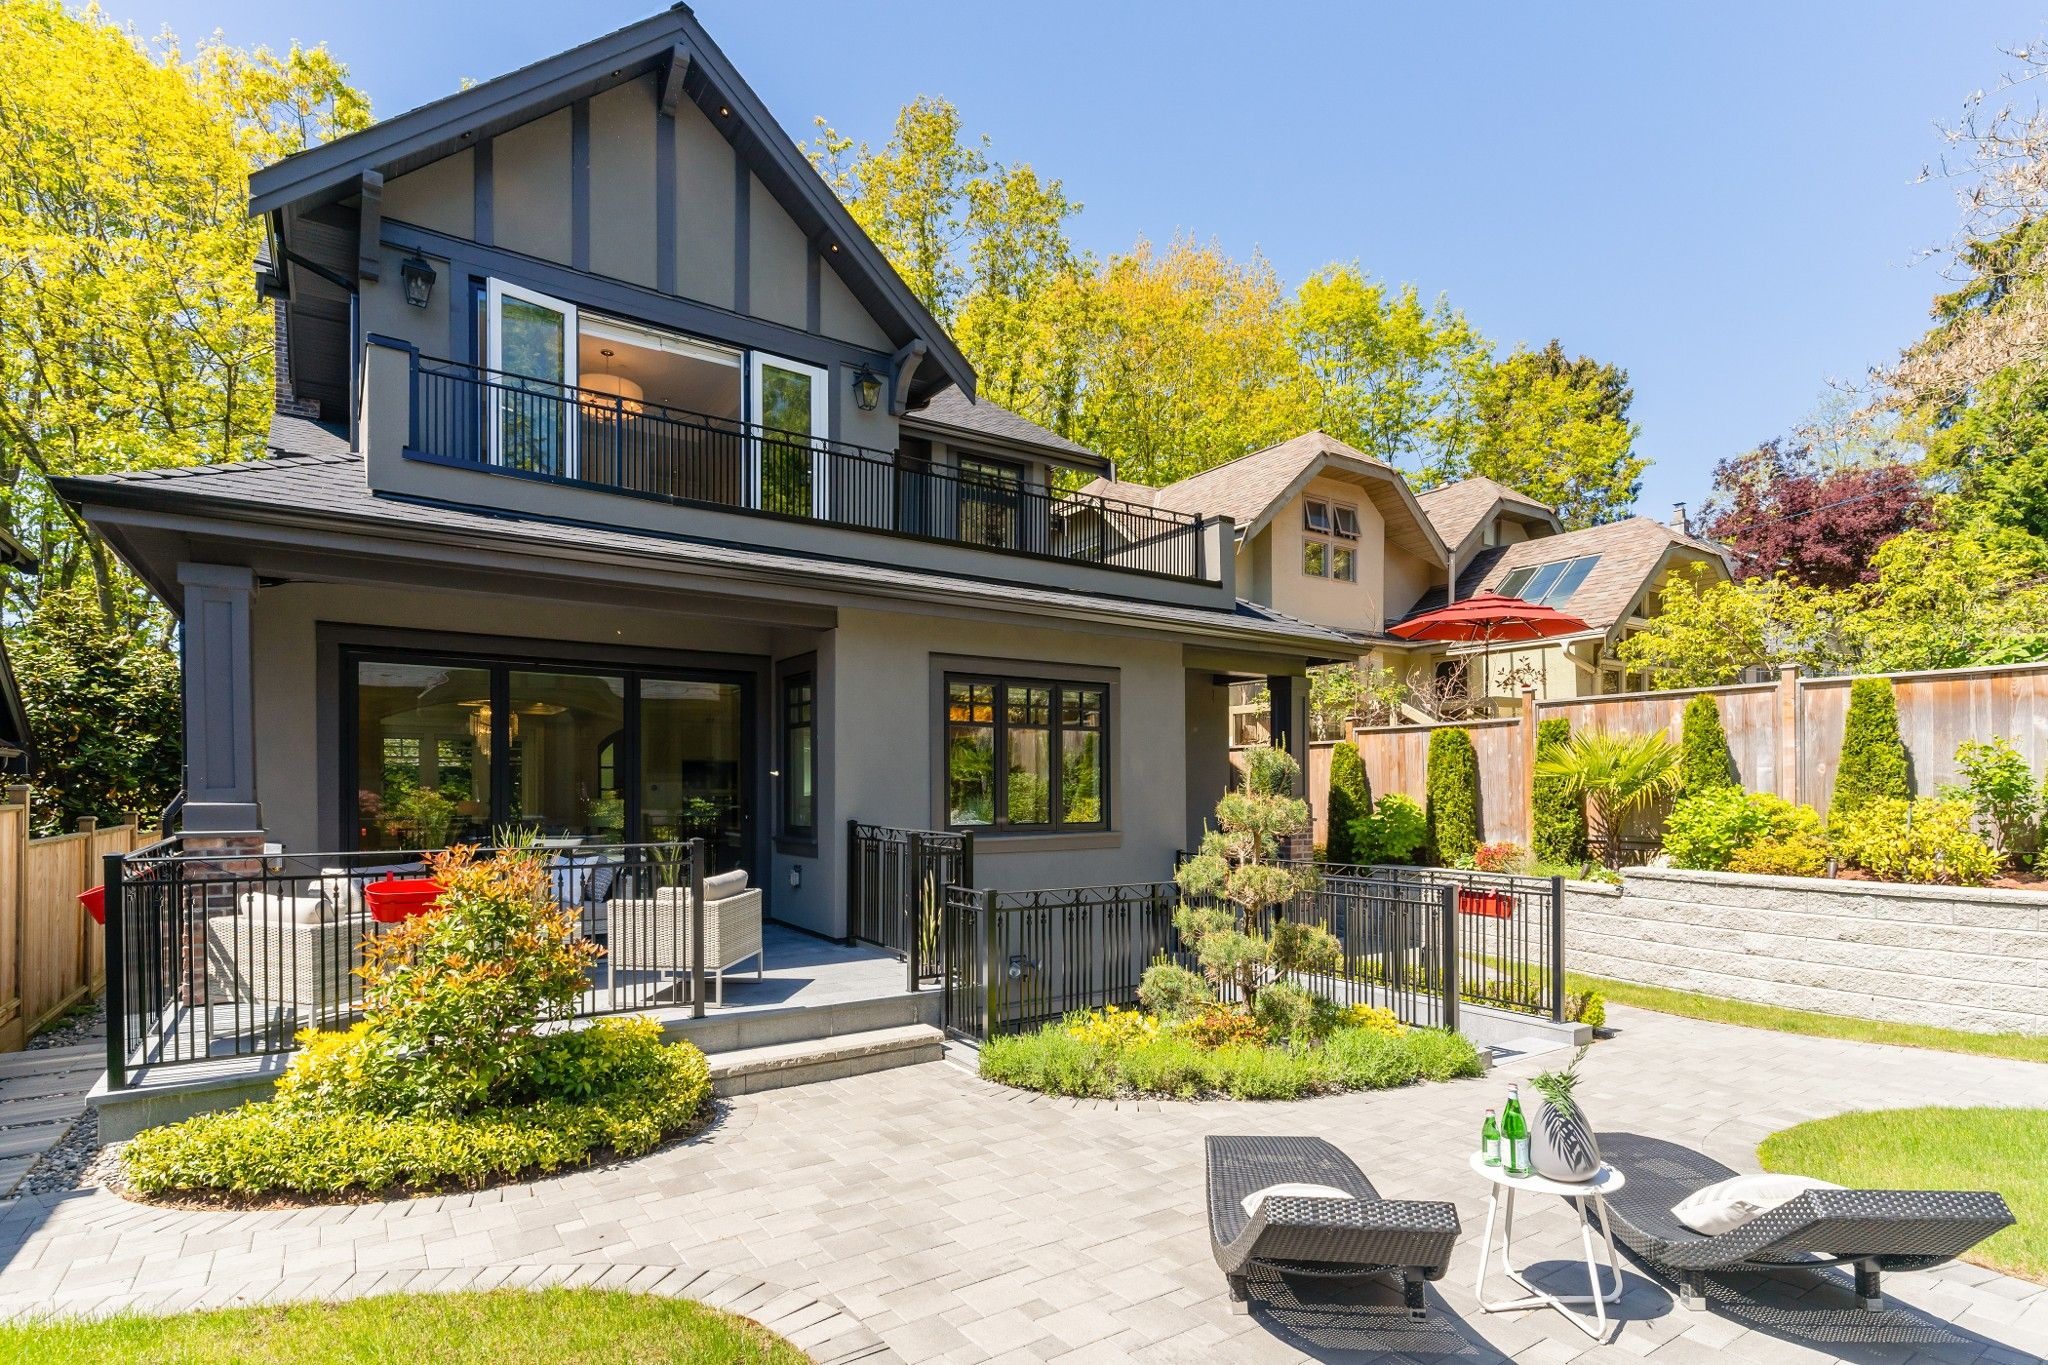 Photo 49: Photos: 5756 ALMA STREET in VANCOUVER: Southlands House for sale (Vancouver West)  : MLS®# R2588229